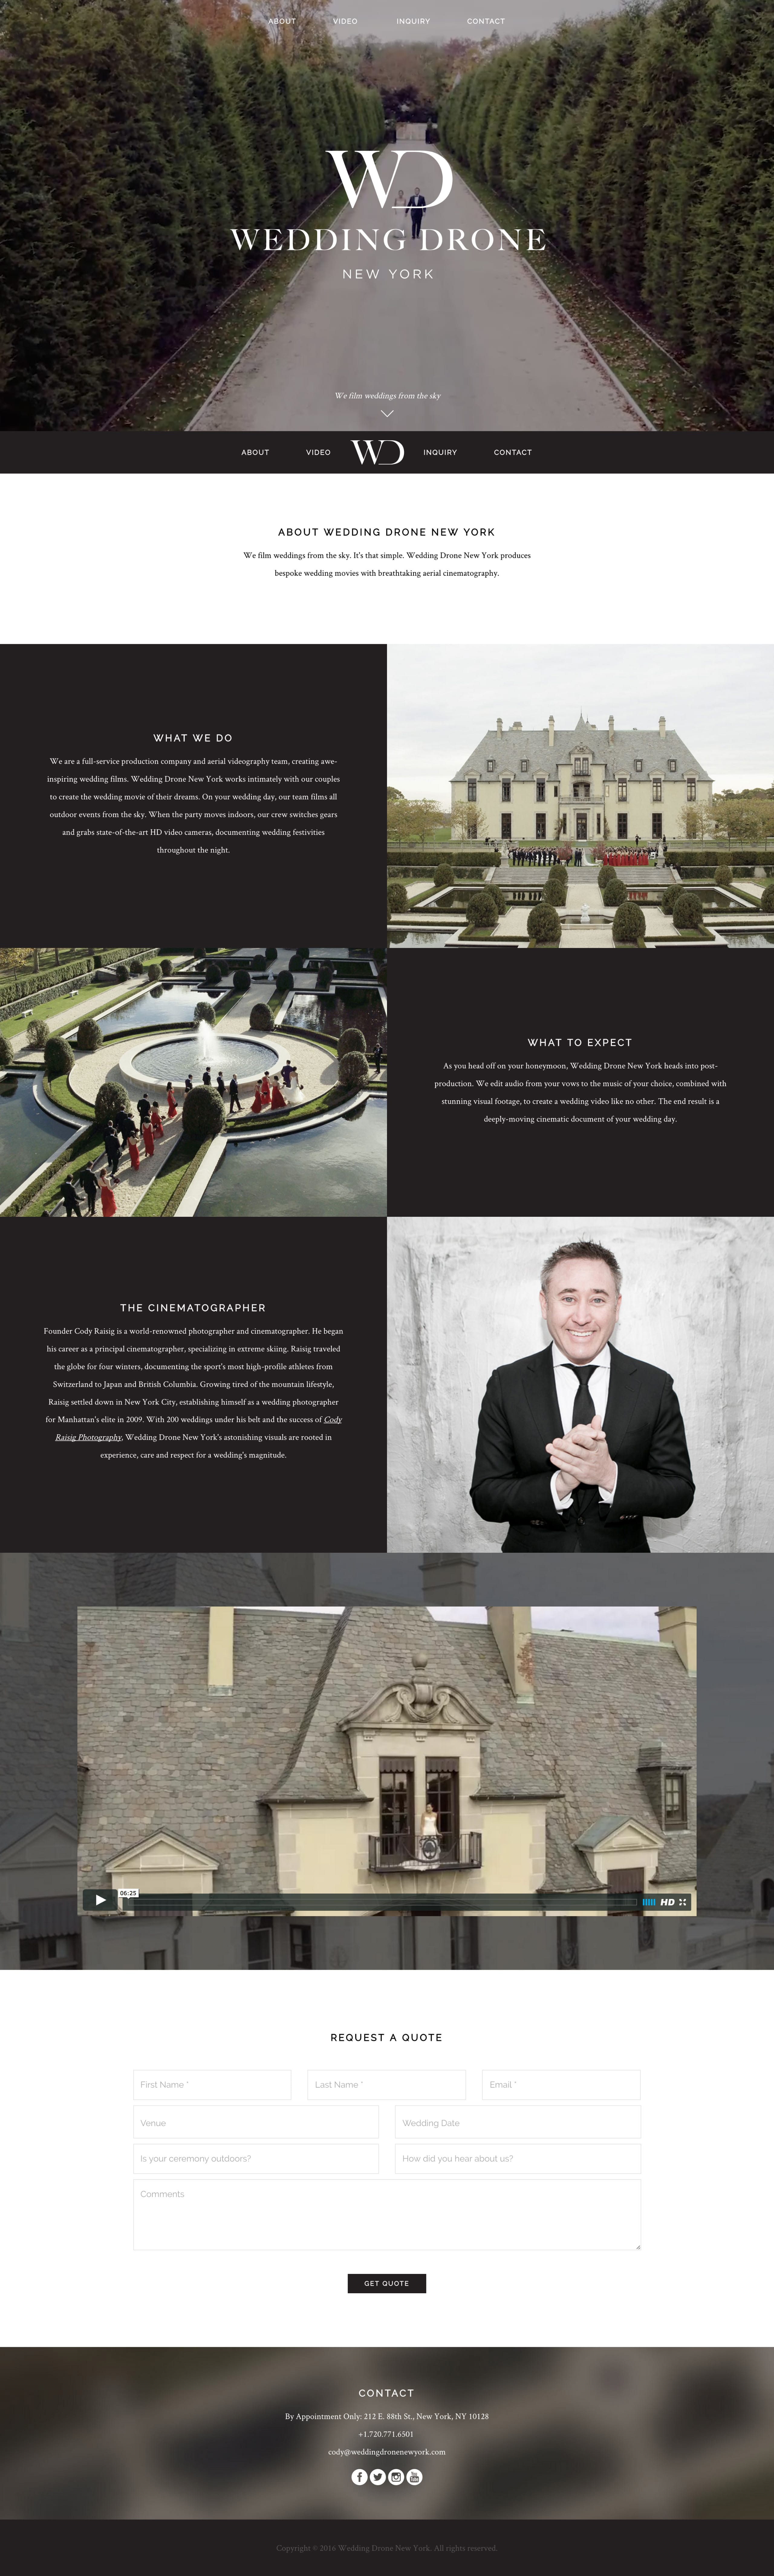 Wedding Drone New York Website Screenshot